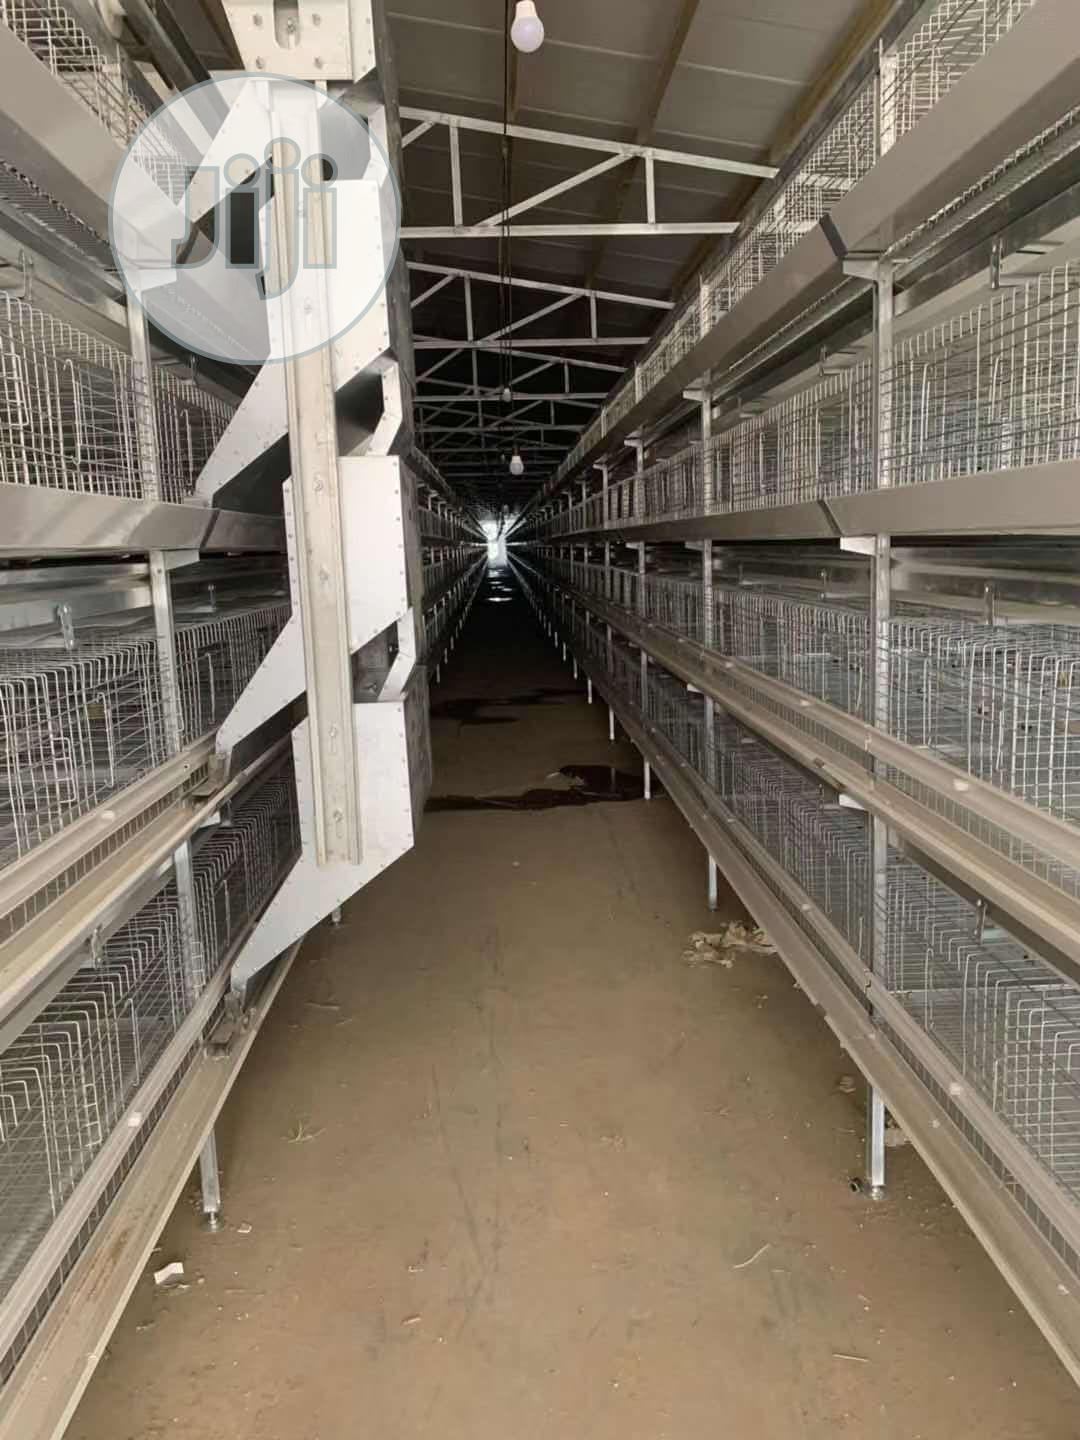 Poultry Cage / China Automatic Poultry Cage | Farm Machinery & Equipment for sale in Kolokuma/Opokuma, Bayelsa State, Nigeria